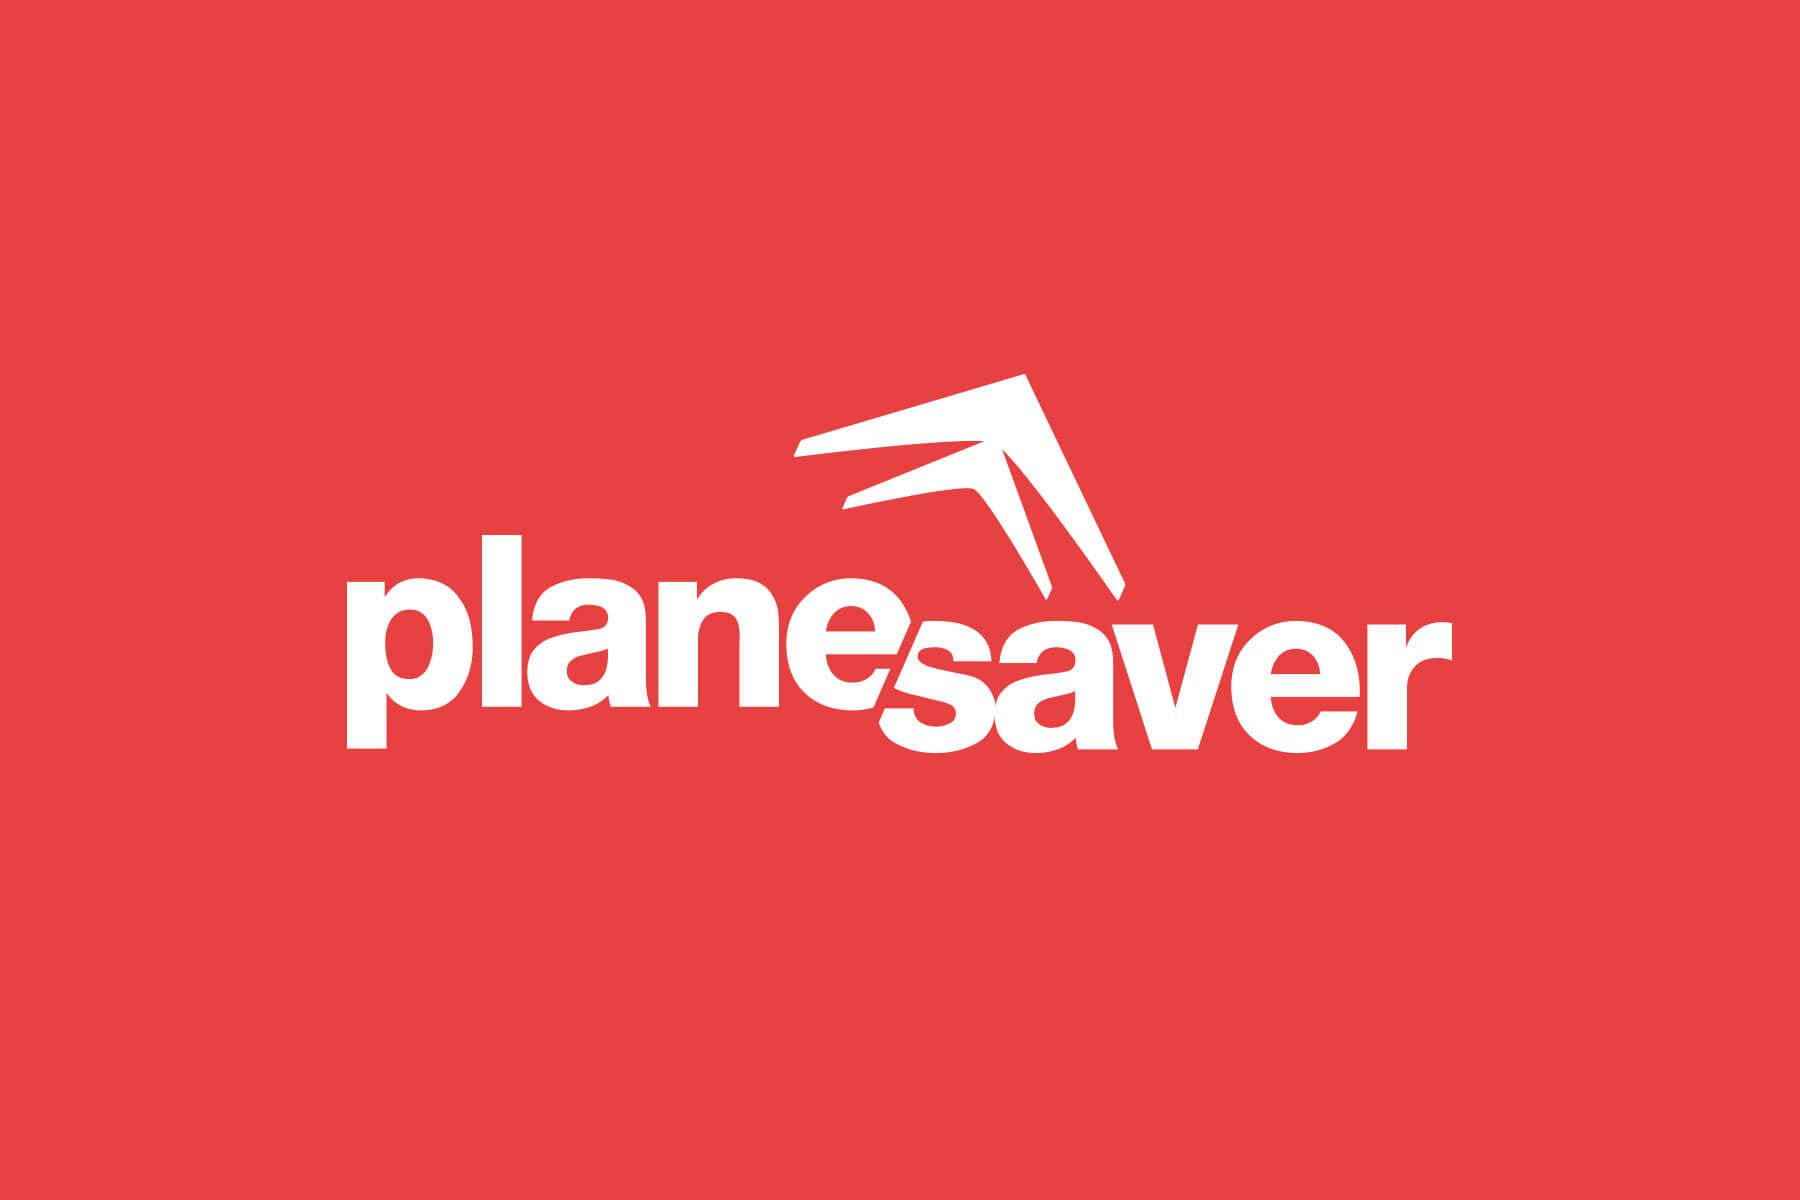 Plane Saver / Loans and savings made simple